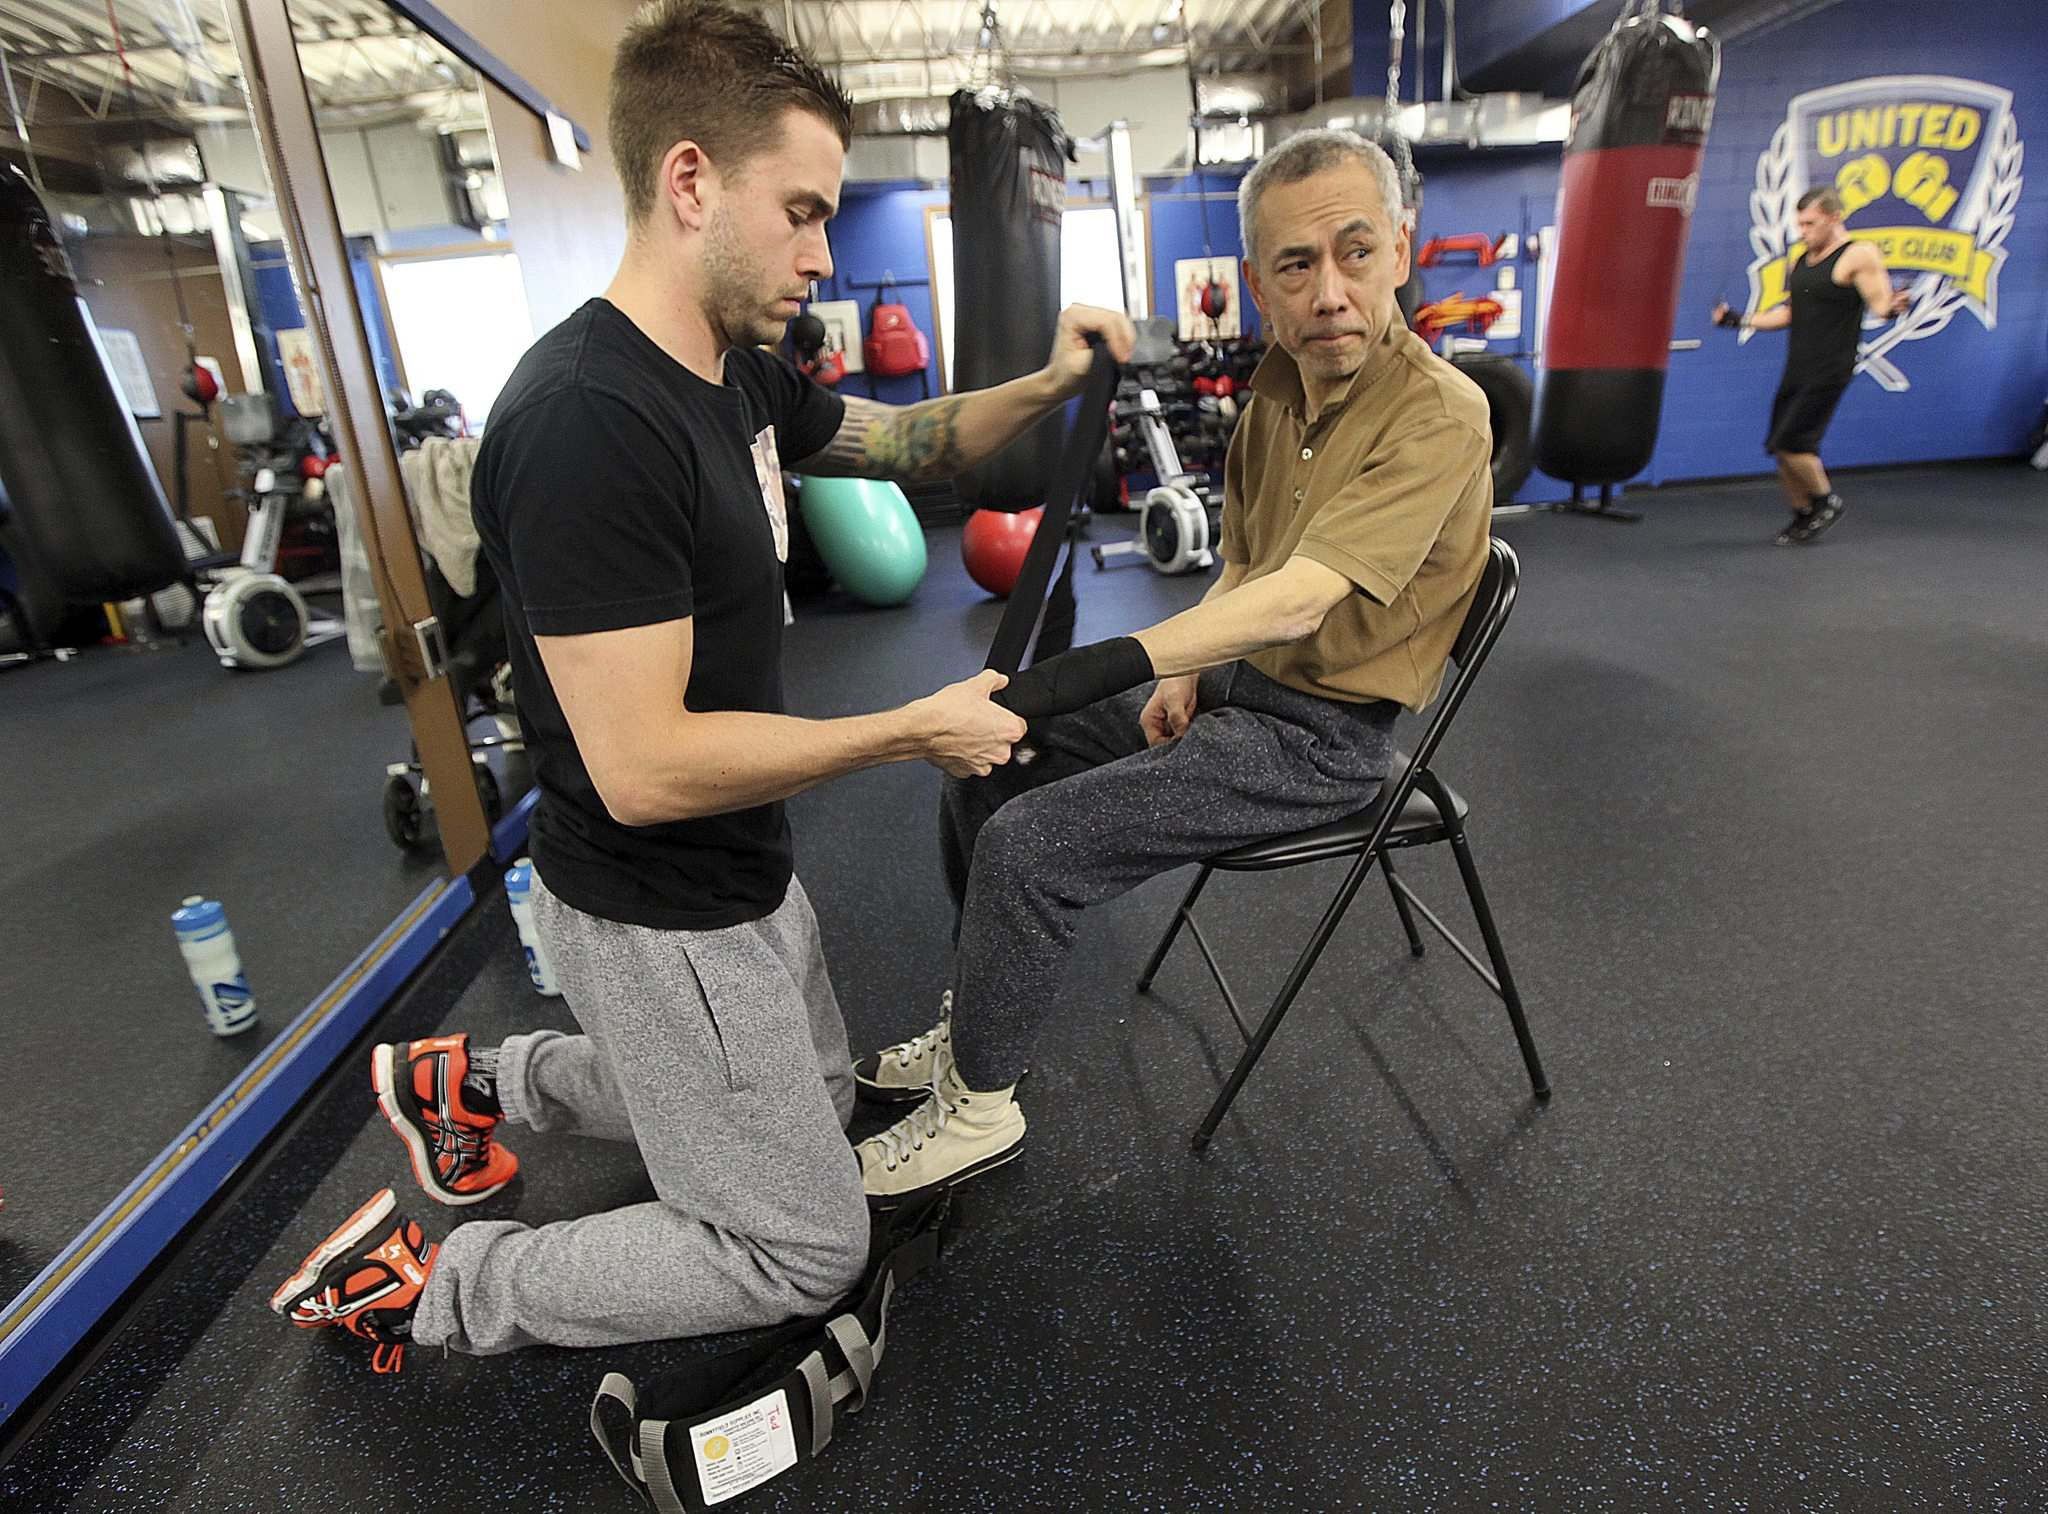 PHIL HOSSACK / WINNIPEG FREE PRESS</p><p>Trainer Braden Pyper (left) tapes Tadashi Orui prepping for his workout.</p></p>